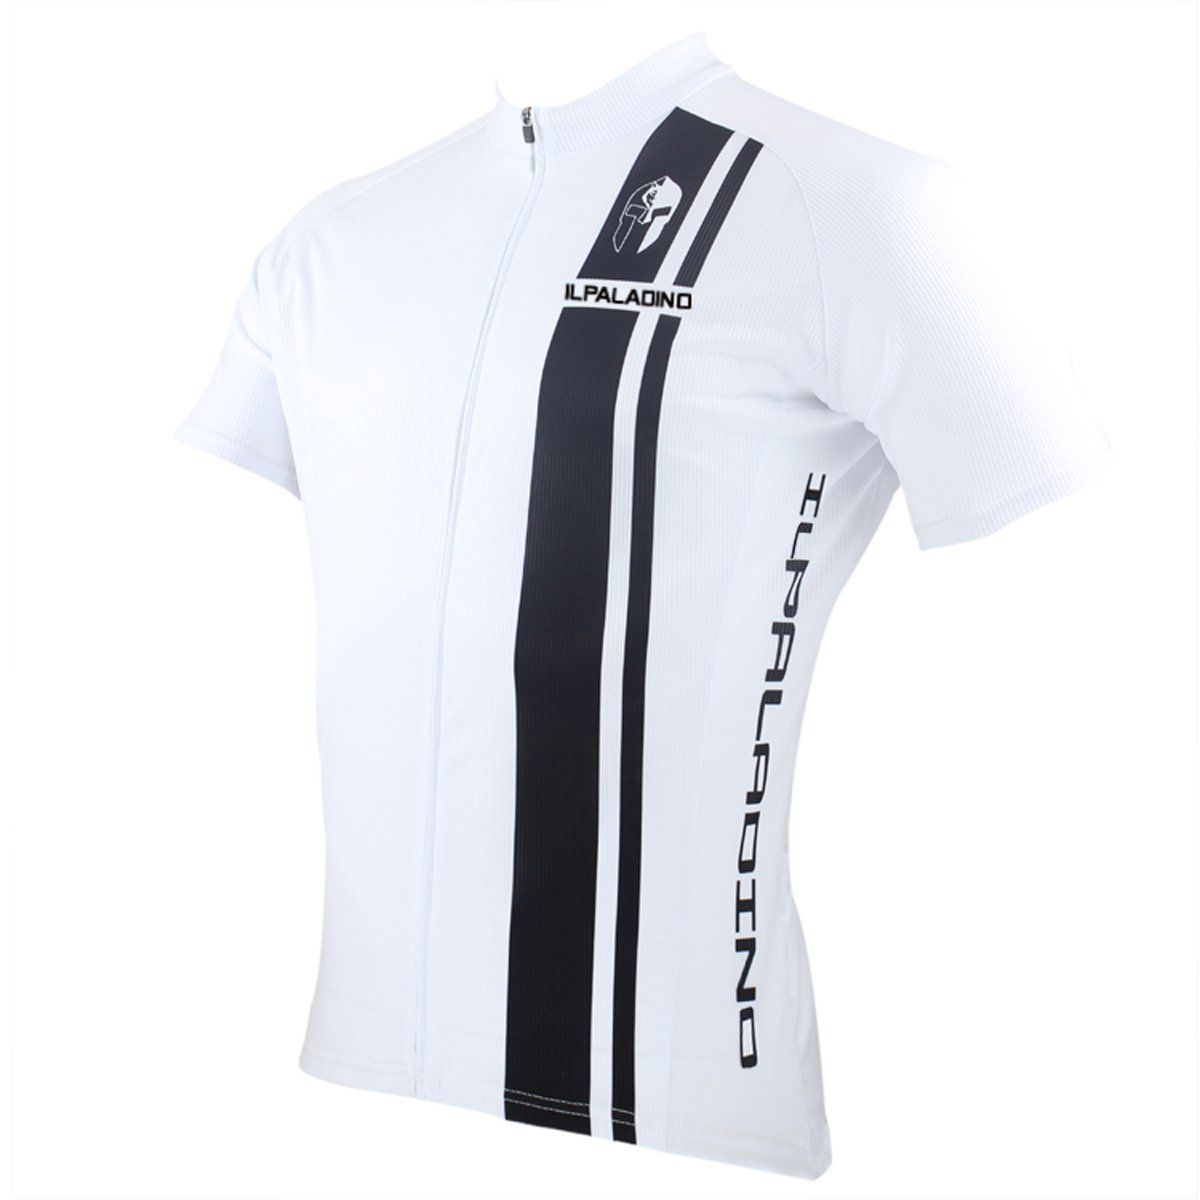 53ca6dcf1 ILPALADINO Man s Short-sleeve Cycling Jersey Team Jacket T-shirt Summer  Spring Autumn Clothes